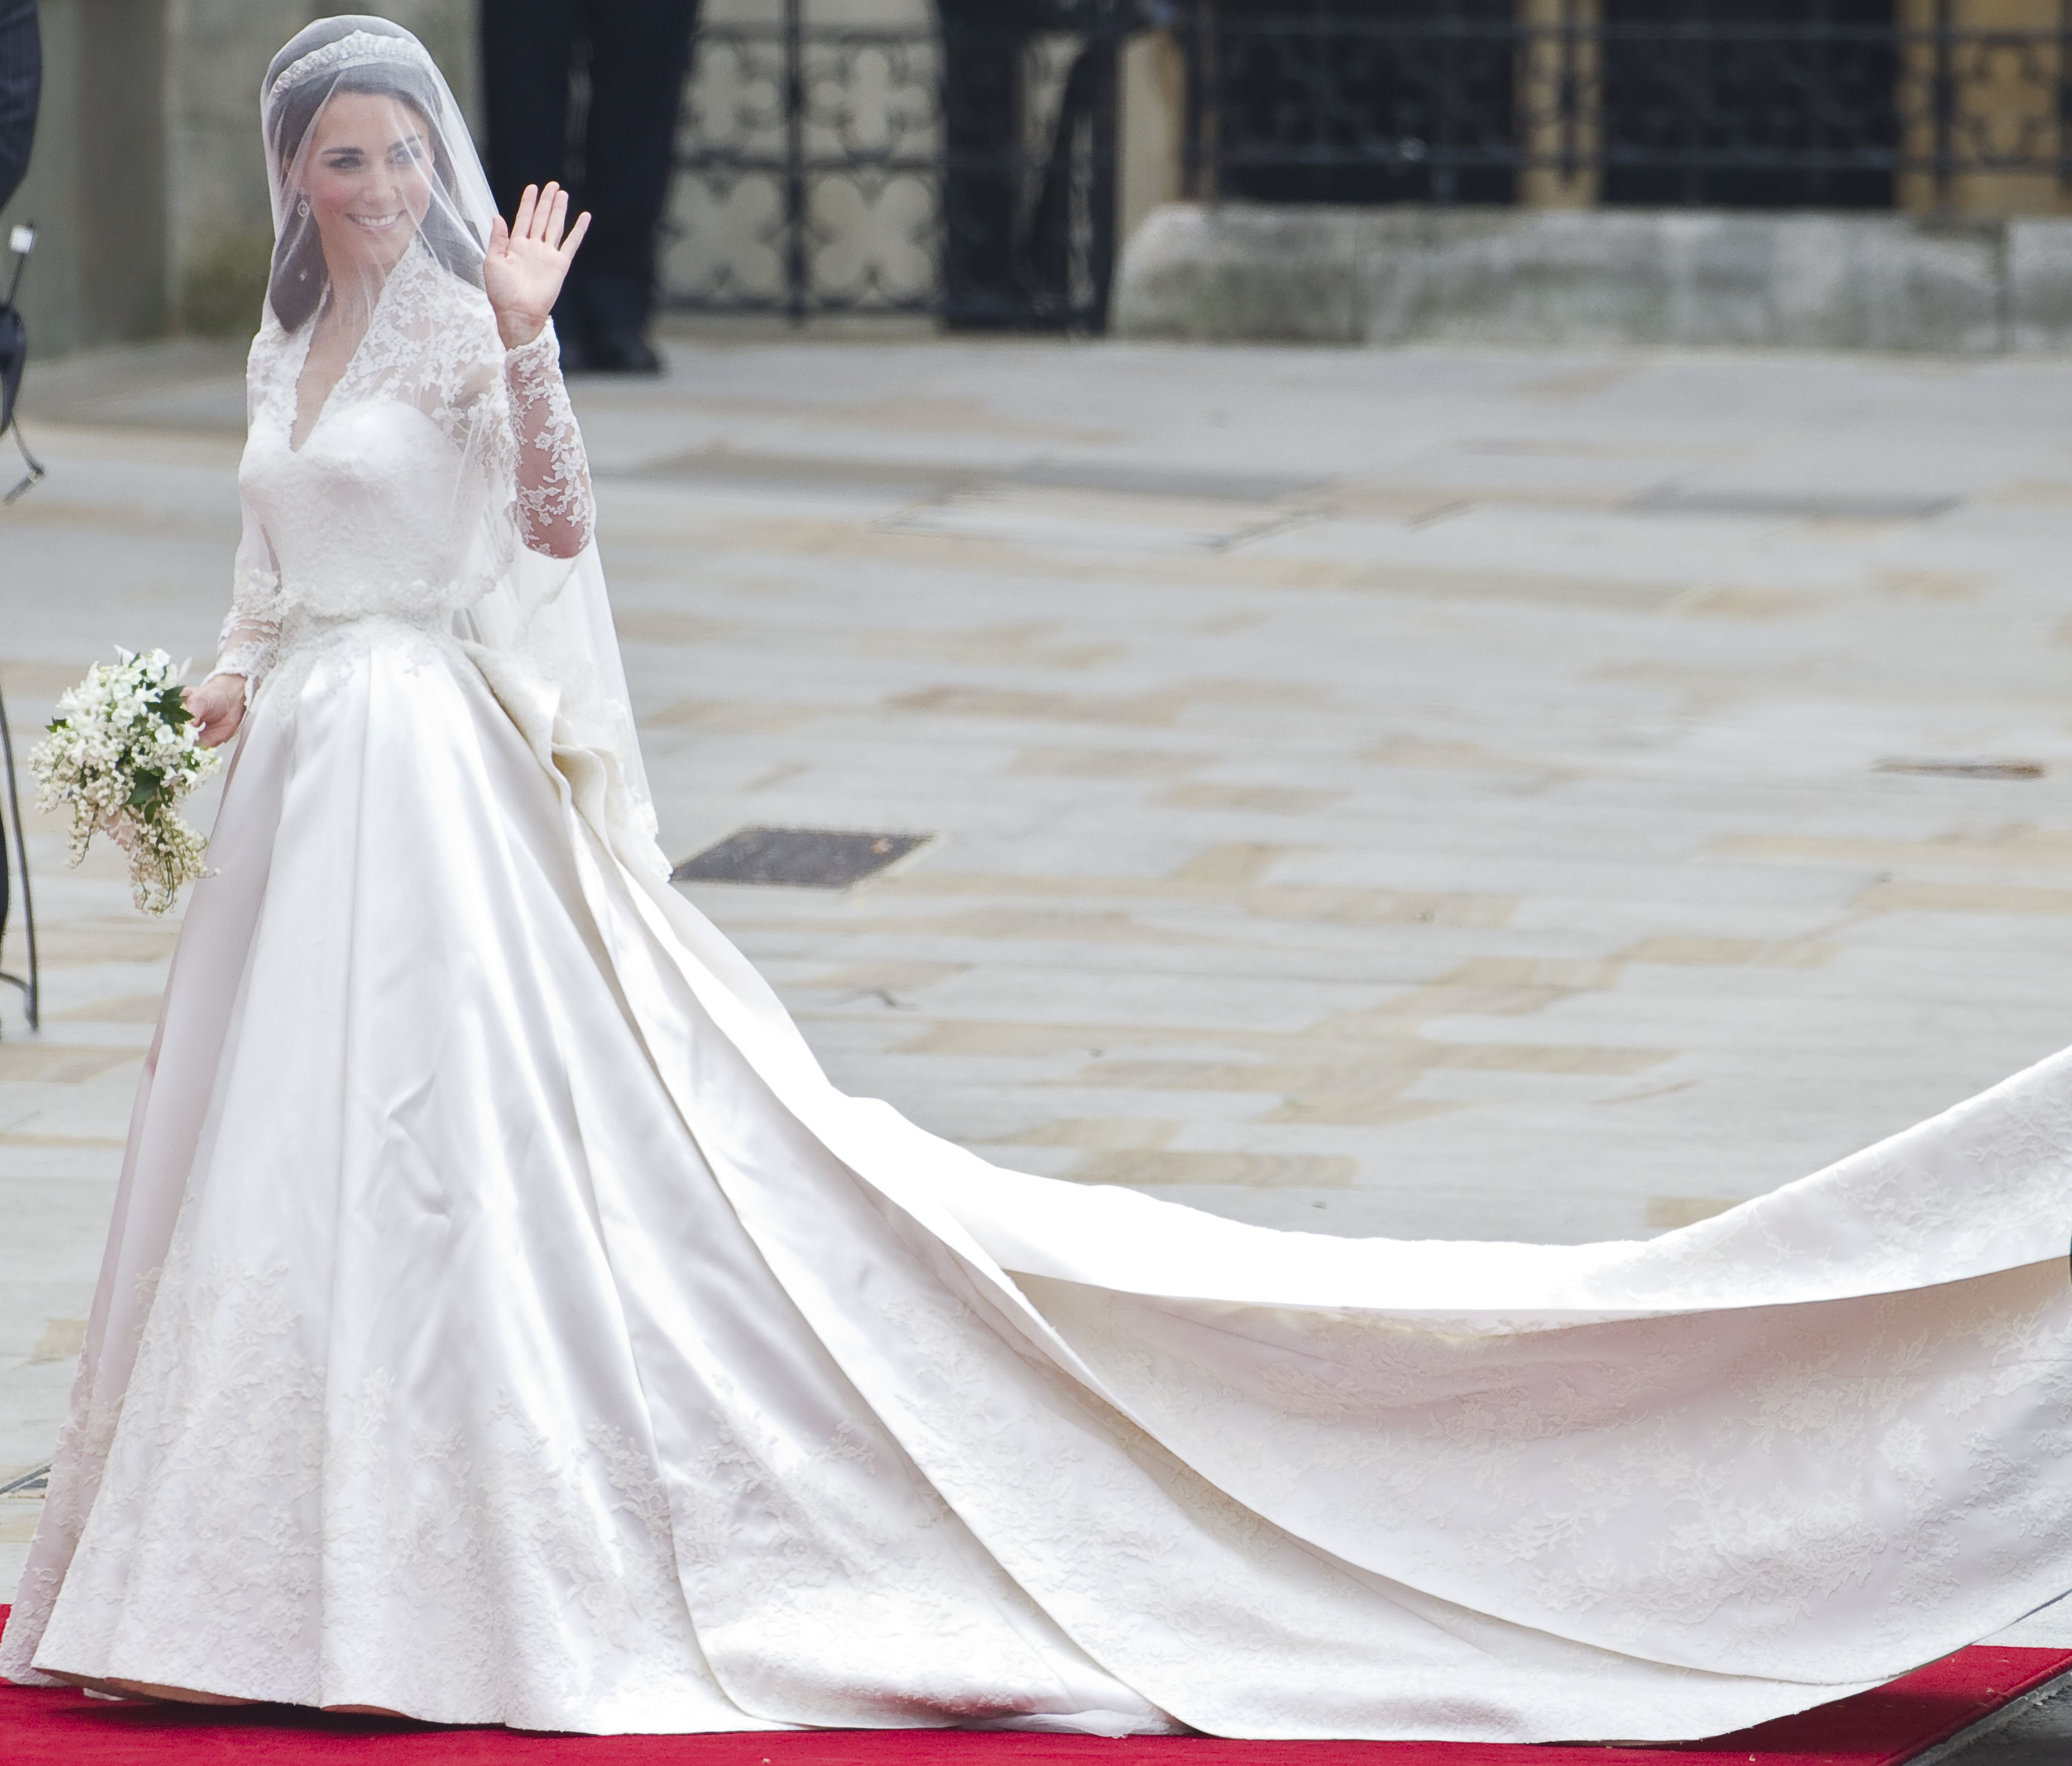 Kate Middleton Arrives in Westminster Abbey London Britain 29 April 2011 For Her Wedding Ceremony Westminster Abbey Has a Long Tradition As a Venue For Royal Weddings Going Back to 1100 William's Grandparents Queen Elizabeth Ii and Prince Philip Duke of Edinburgh Got Married There on 20 November 1947 the Bride Wears a V-neck Alexander Mcqueen Gown Designed by Creative Director Sarah Burton and a 1936 Cartier Halo Tiara Lent to Her by Queen Elizabeth United Kingdom LondonBritain Royal Wedding - Apr 2011